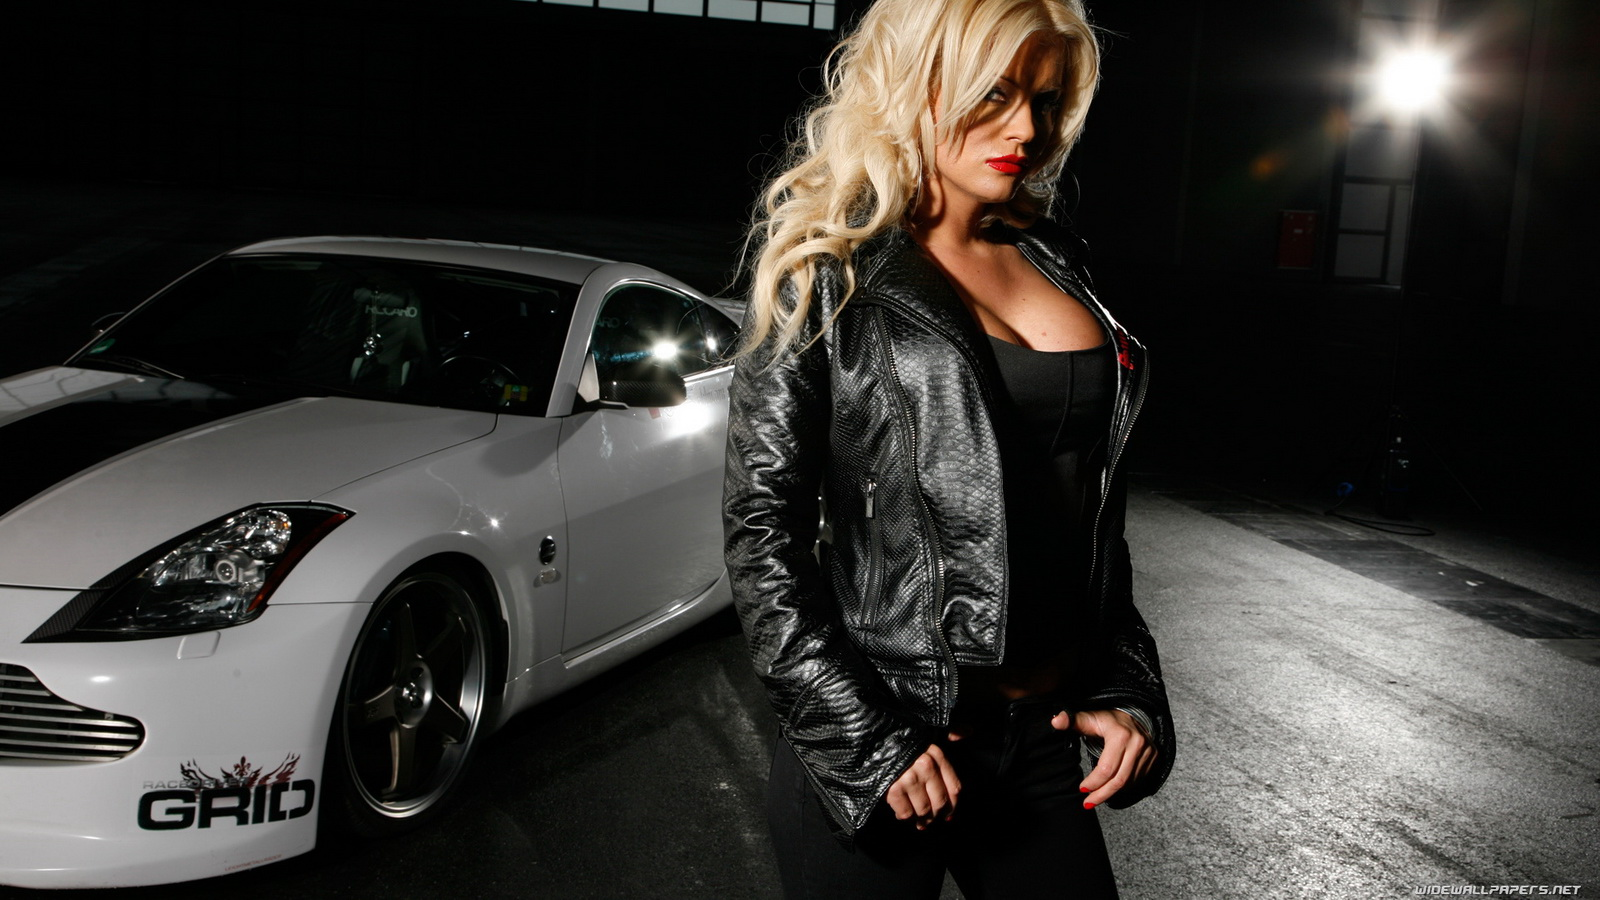 Beautiful Cars wallpapers girls and cars wallpaper hd 1600x900